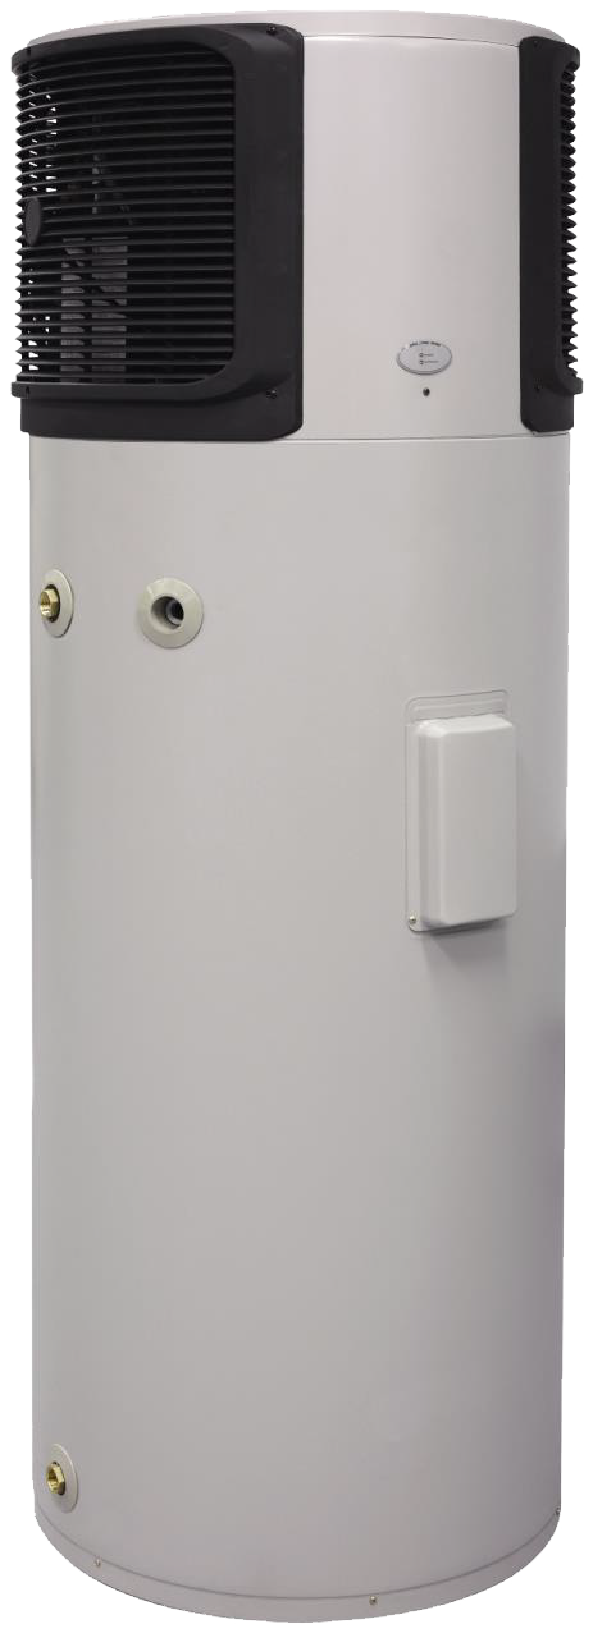 HDi-310 Series All In One Heat Pump Water Heater